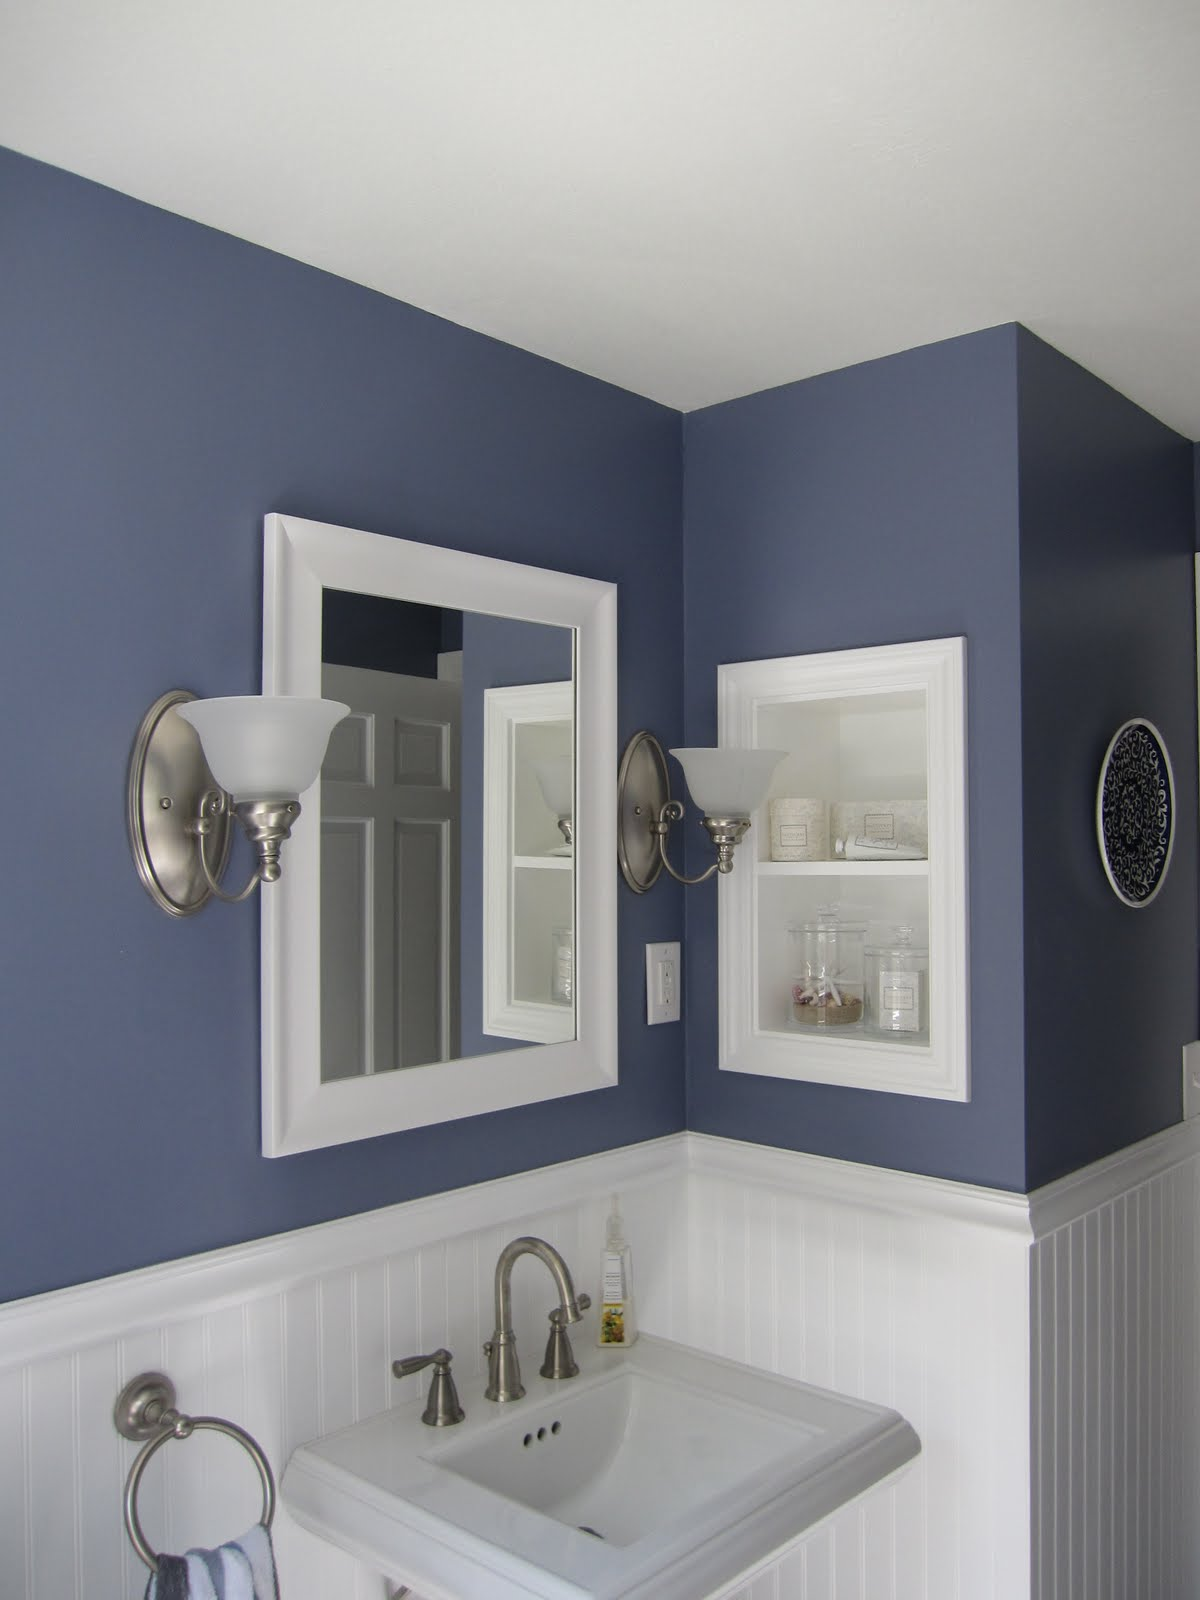 Artistic Blue Bathroom Walls Of Full Size Of Bathrooms Traditional Designs Floor